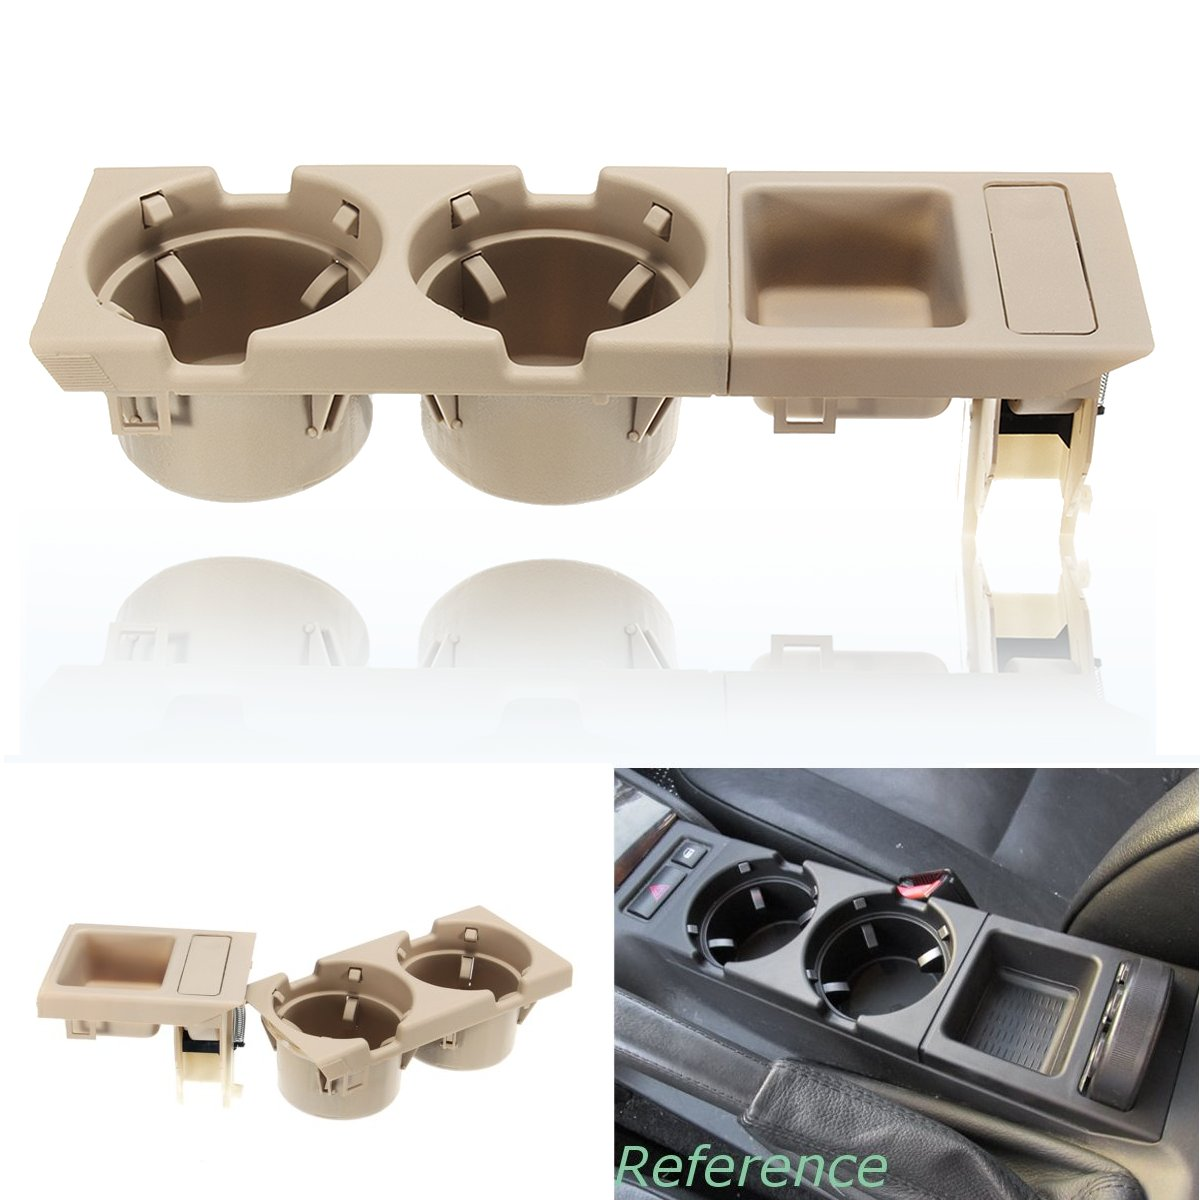 New Beige Double Hole Car Vehicle Front Center Console Storage Box Coin + Cup Holder for BMW E46 3SERIES 1998-2006 51168217953